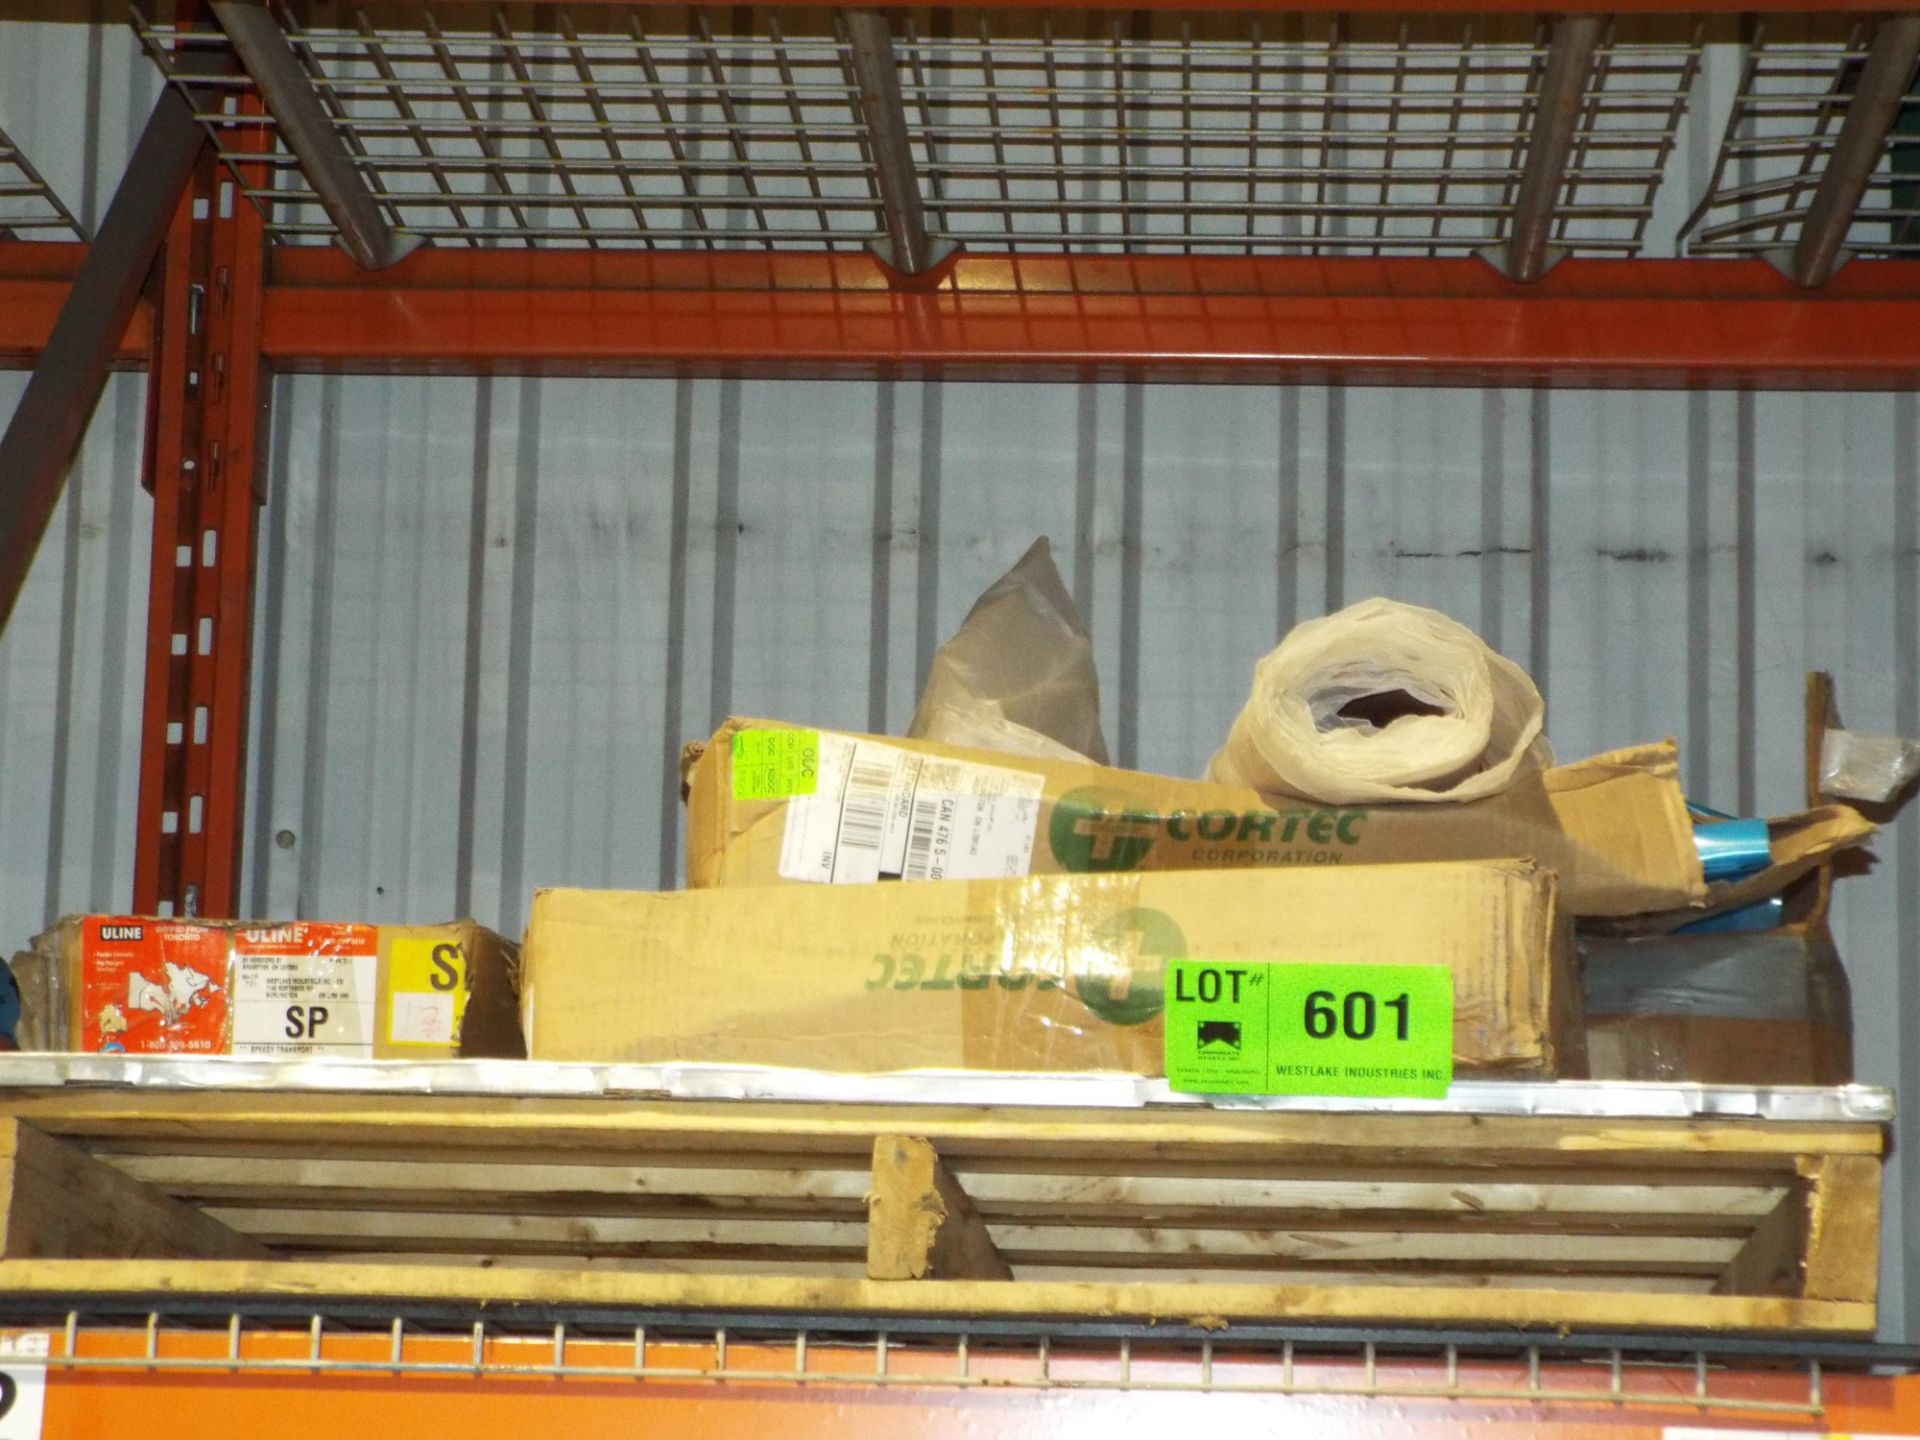 Lot 601 - LOT/ REMAINING CONTENTS OF RACK INCLUDING PLASTIC SHEETING, CARPET SQUARES AND SURPLUS MATERIAL